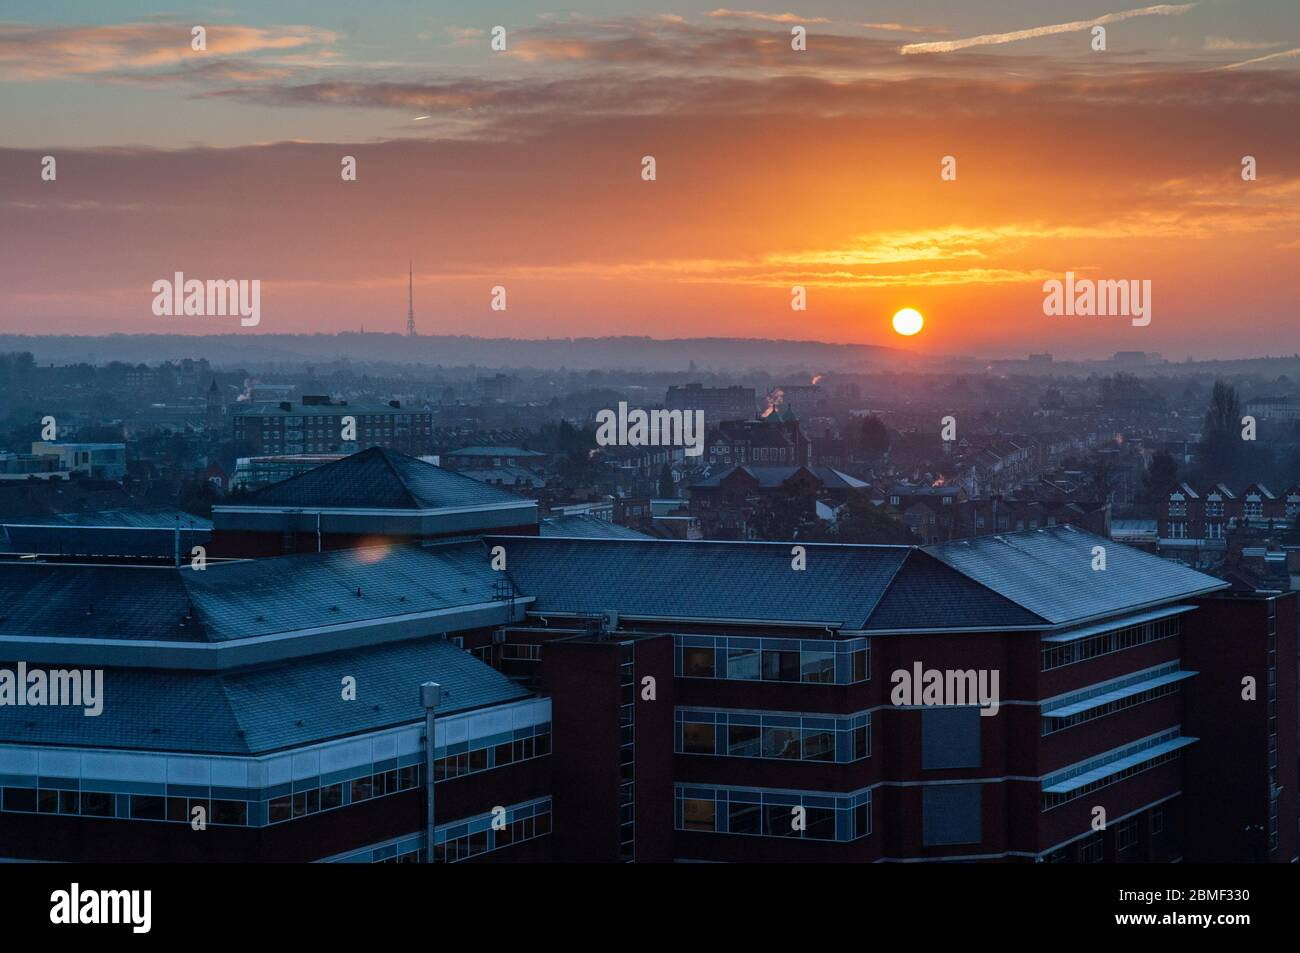 London, England, UK - February 8, 2013: The sun rises over St George's Hospital and the suburban housing of Tooting in South London. Stock Photo